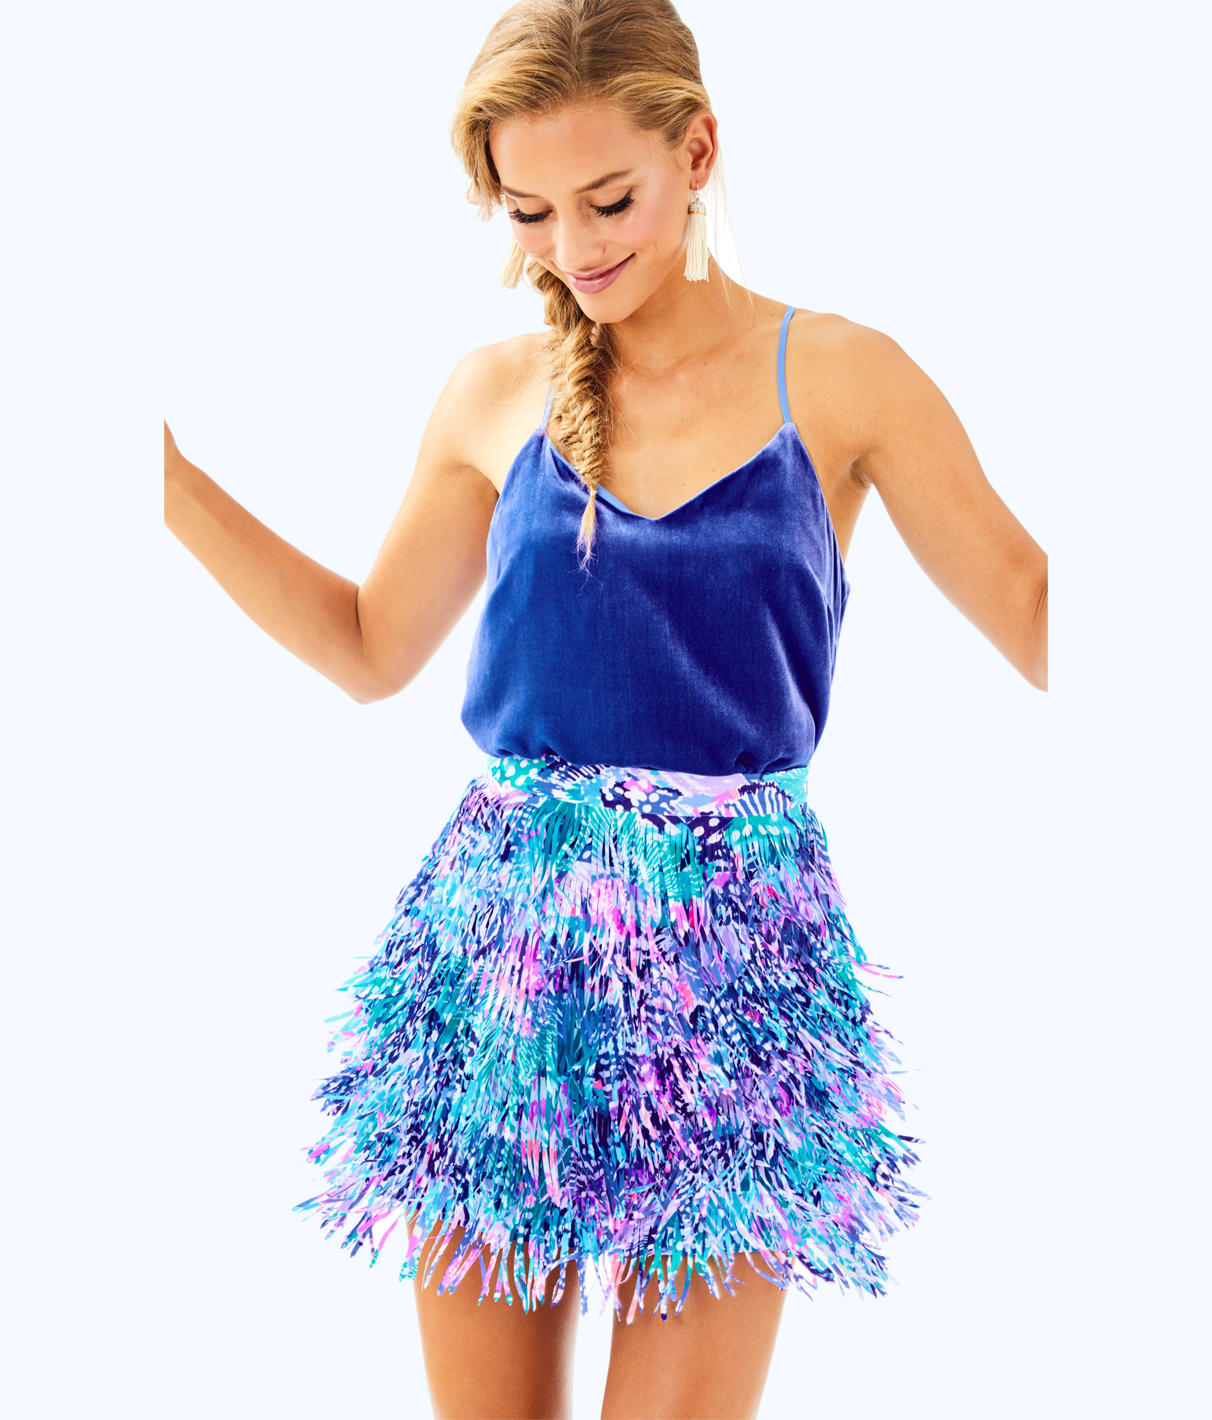 Lilly Pulitzer Lilly Pulitzer Womens Kelsie Skirt